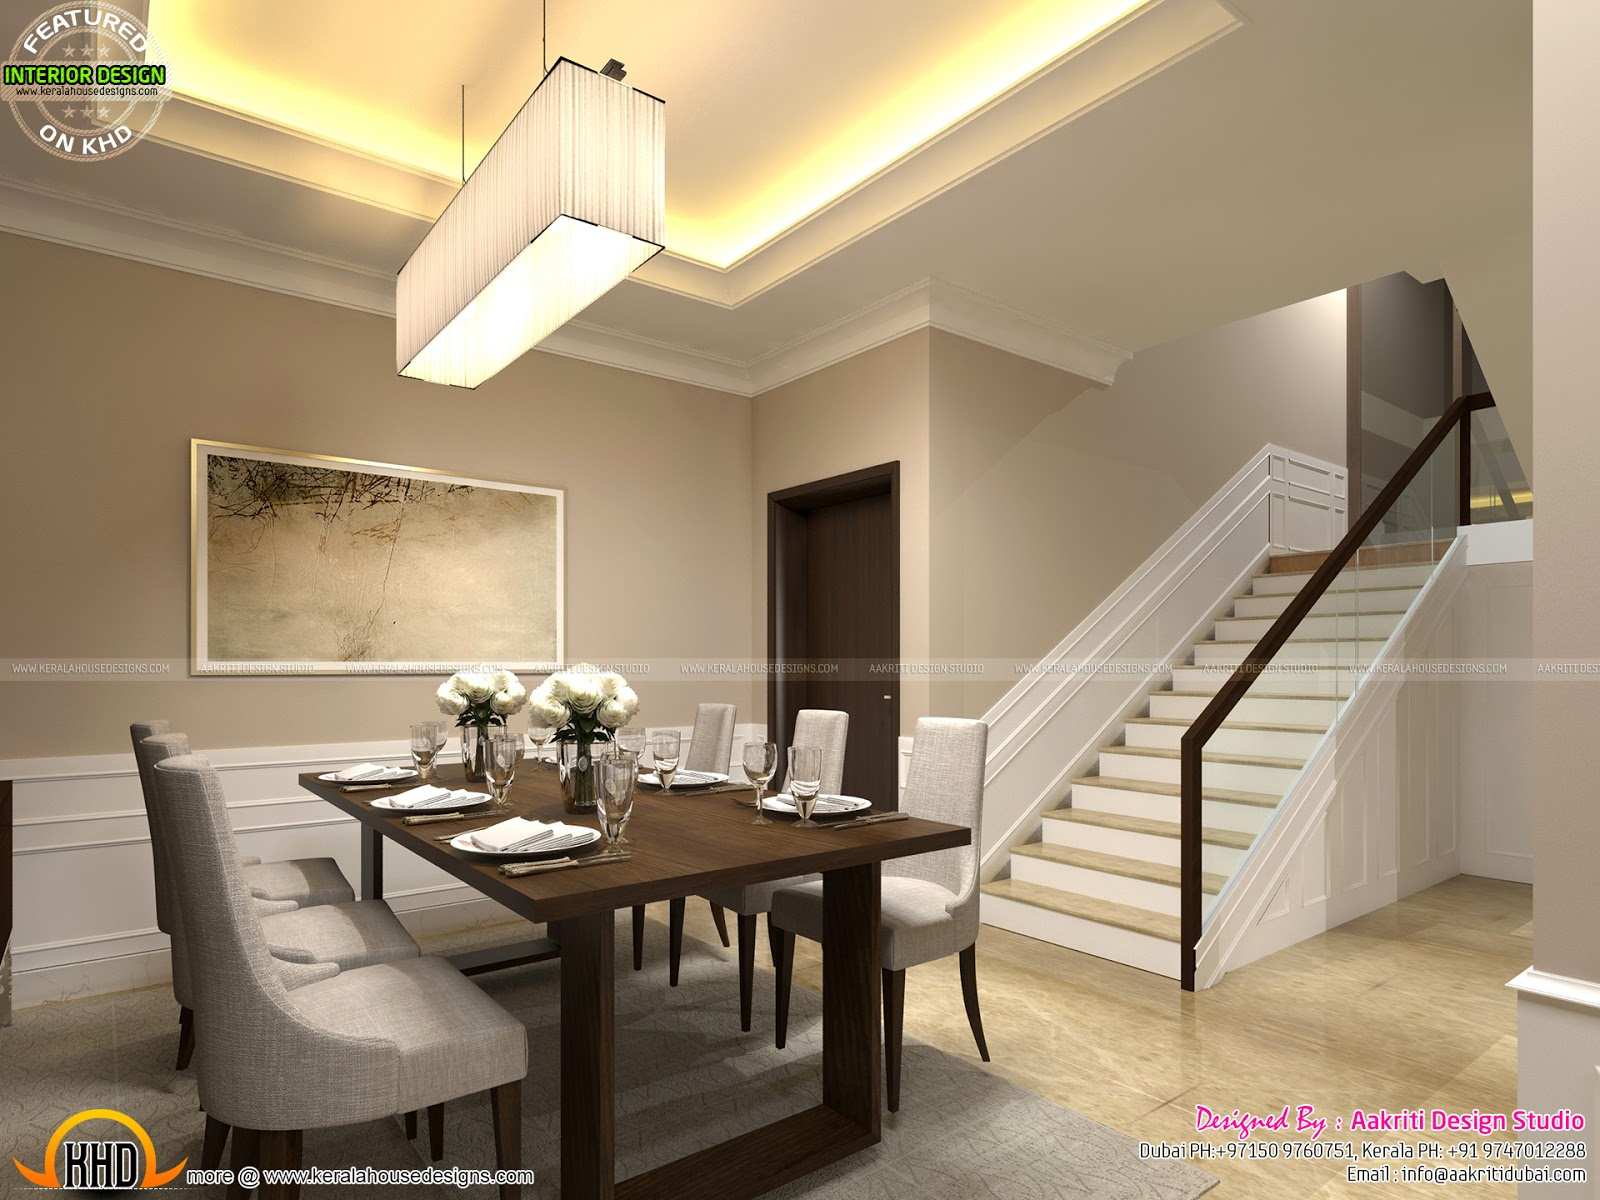 Classic style interior design for living room stair area for Kerala house interior arch design